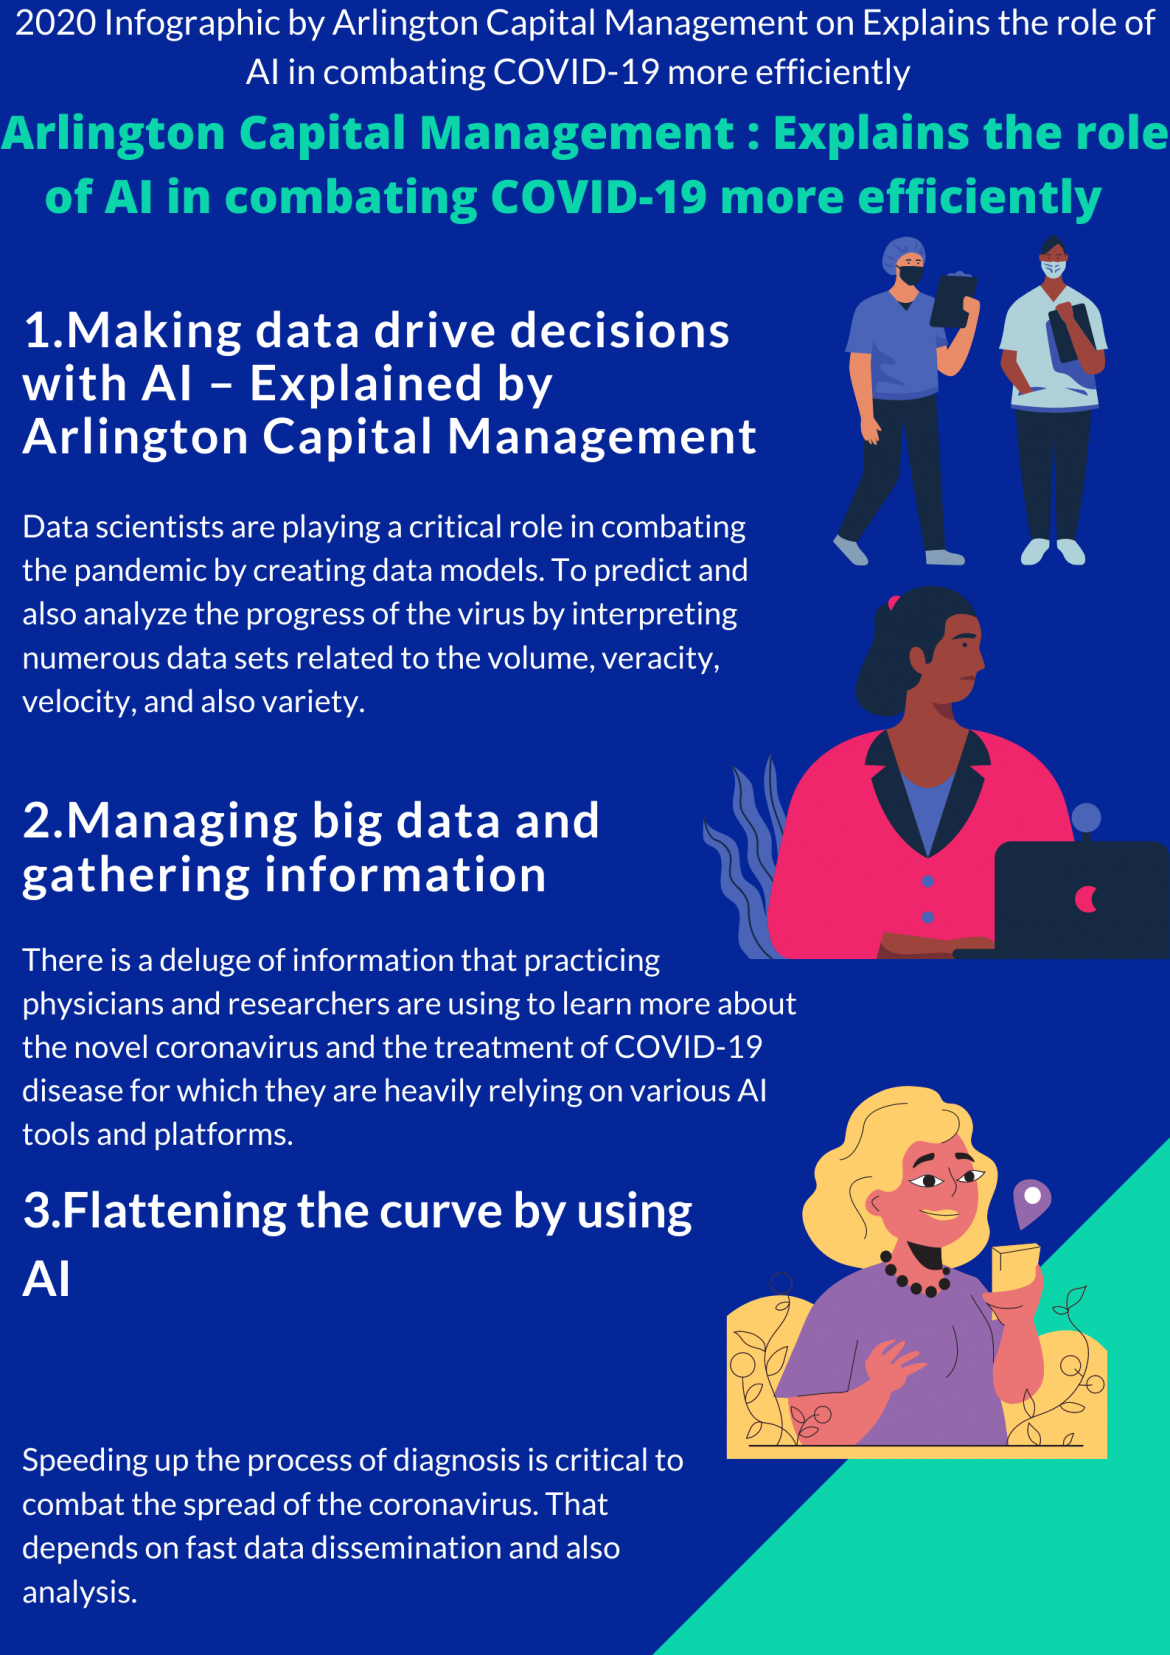 Arlington Capital Management